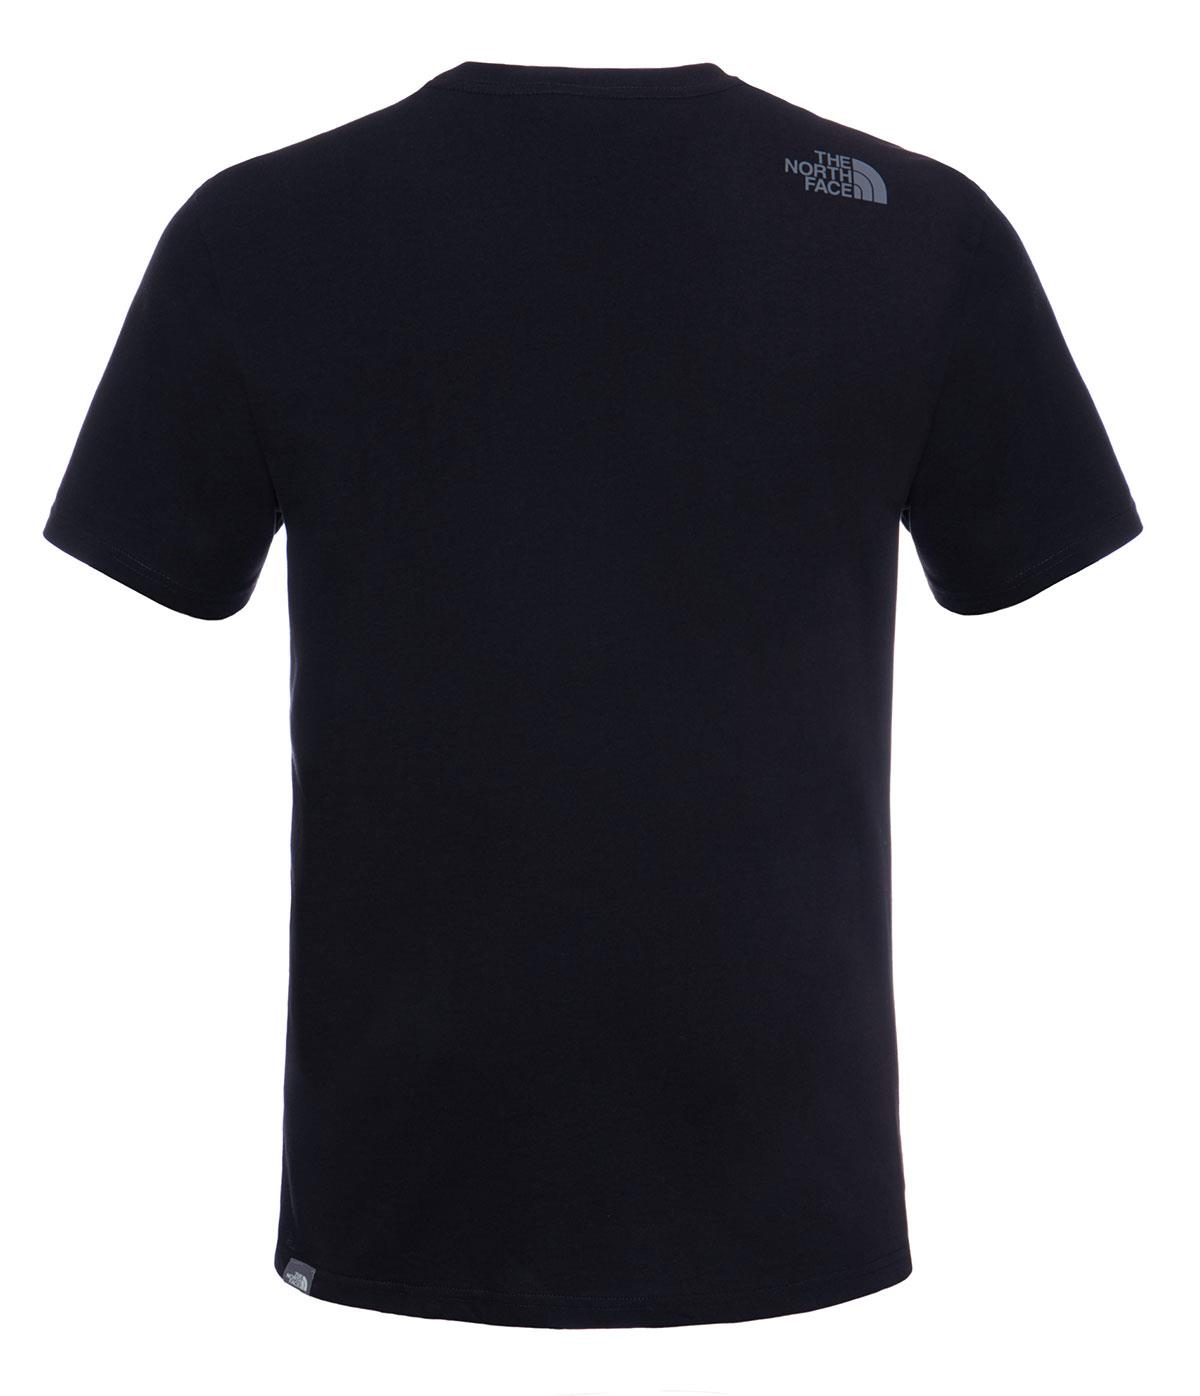 The Northface Erkek S/S Easy Tee T92Tx3Jk3 Tişört